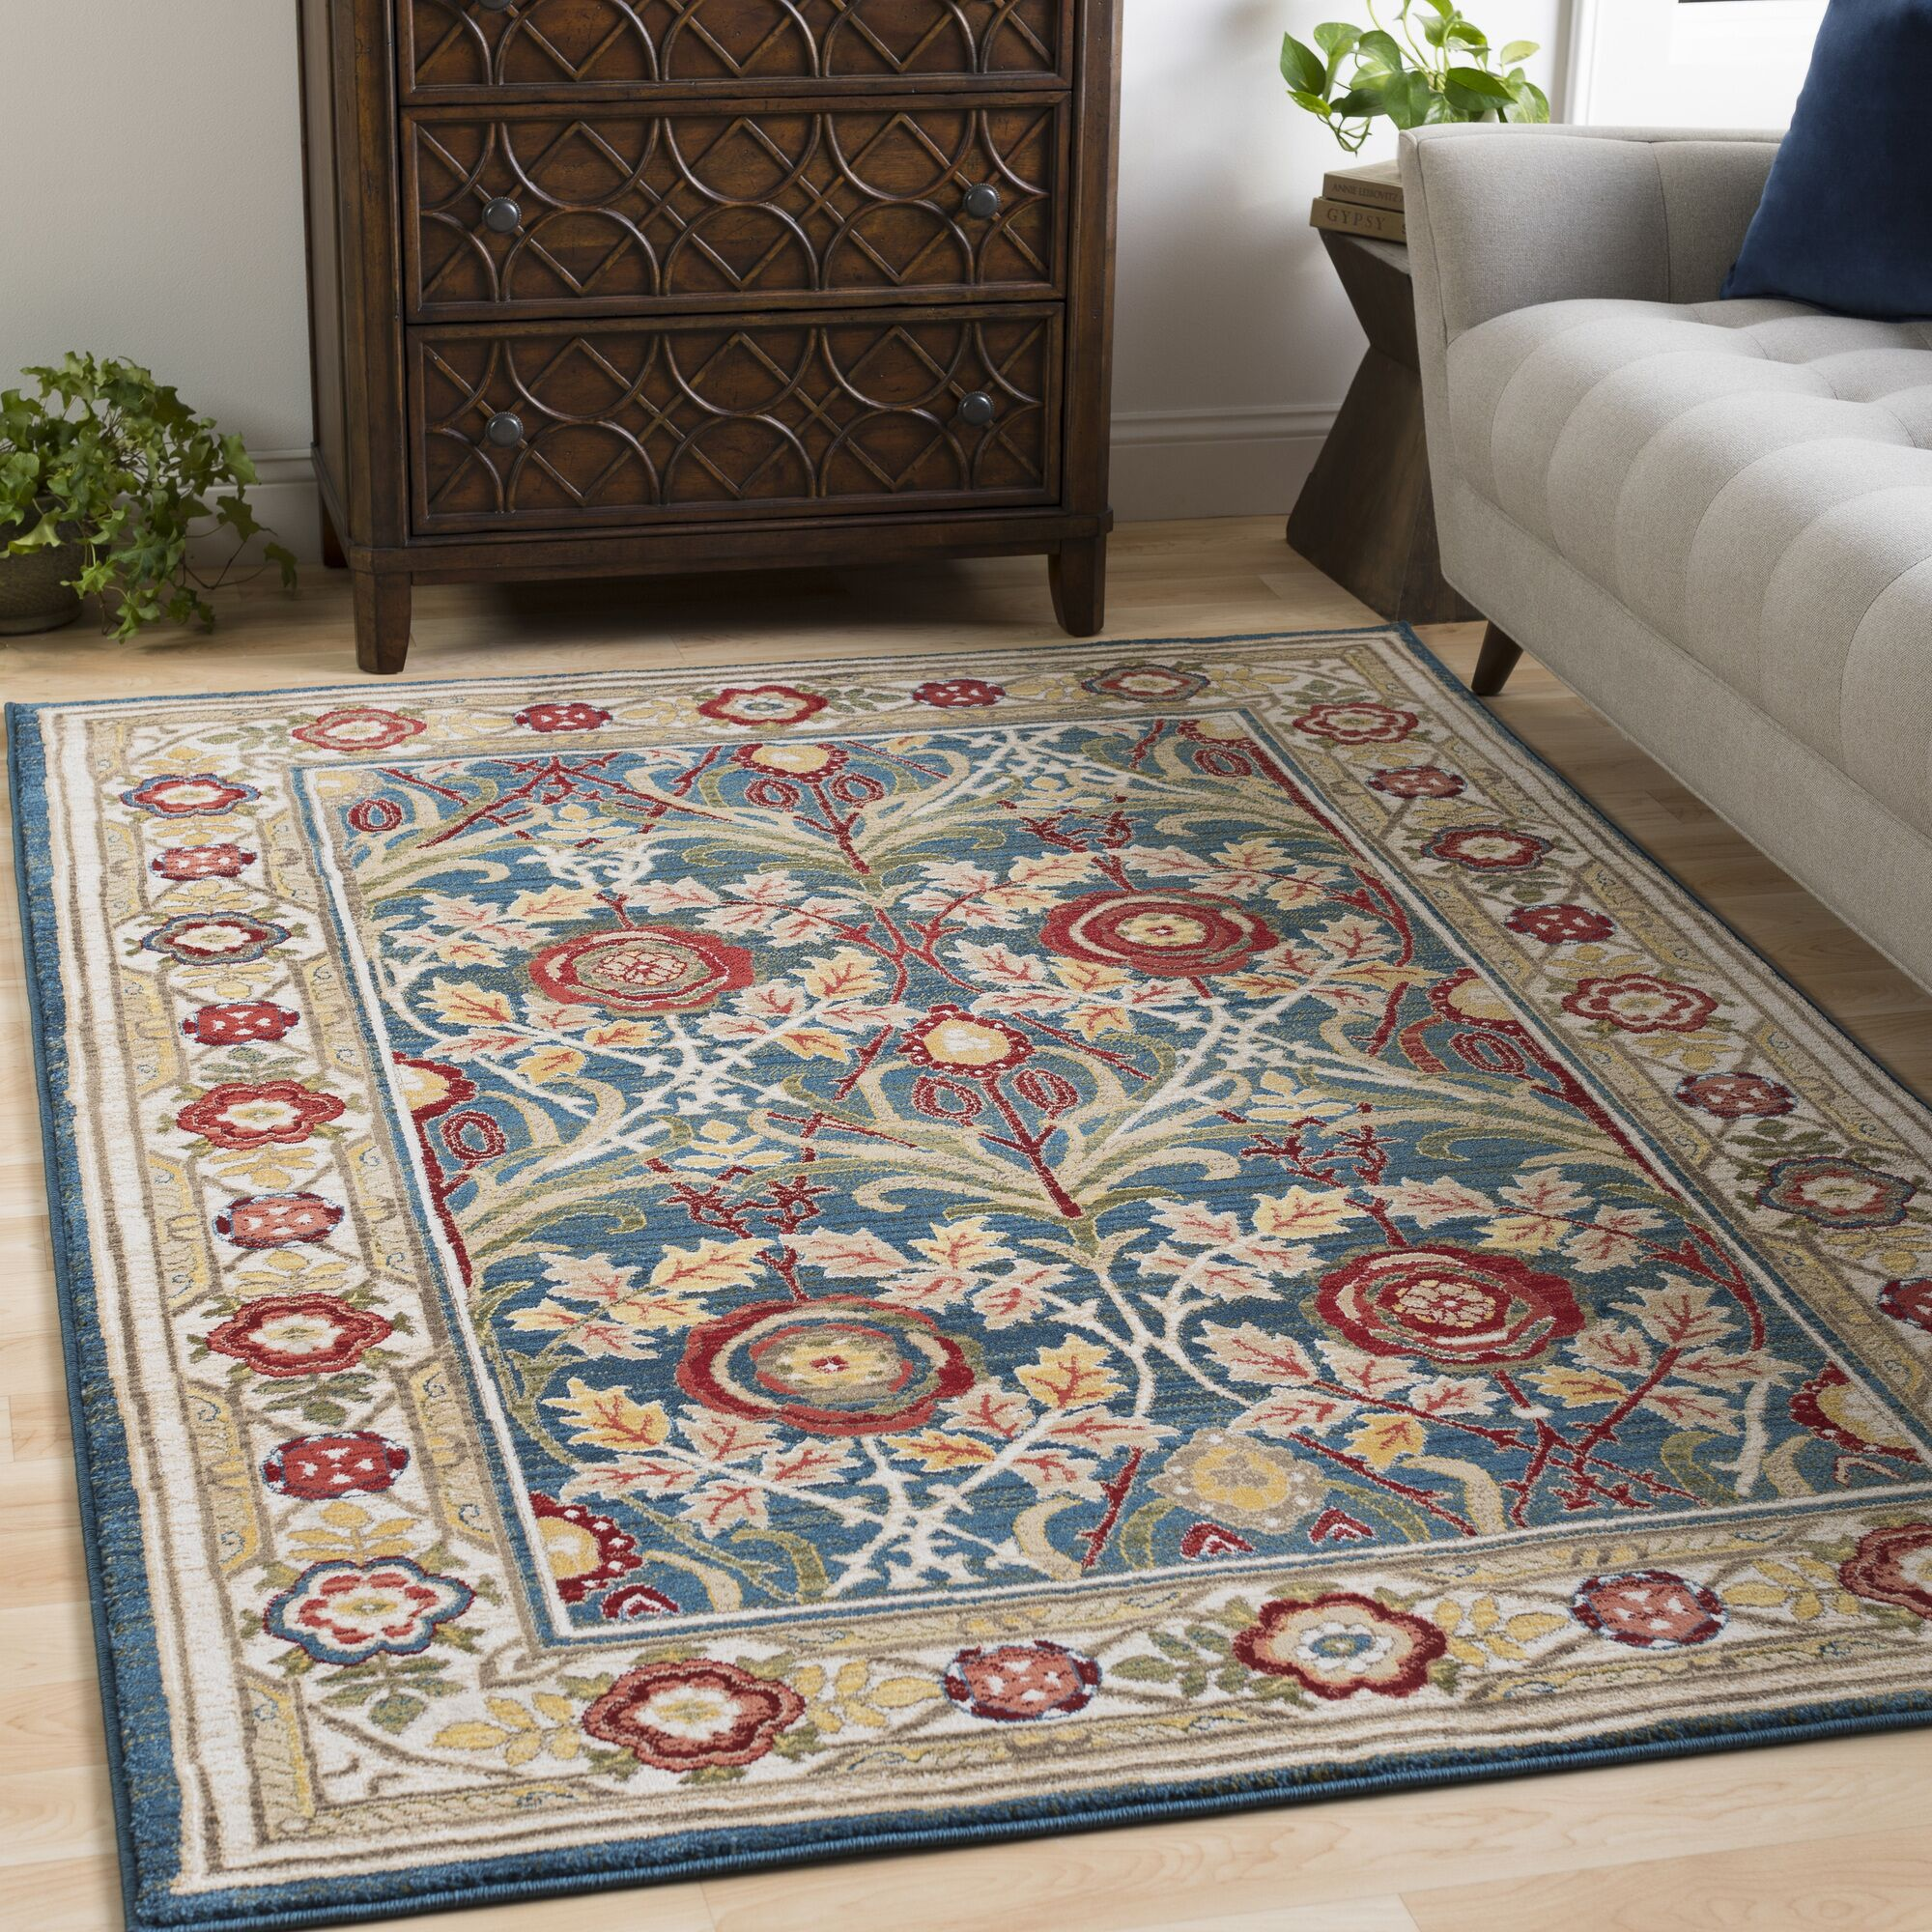 Arbouet Traditional Floral Navy/Cream Area Rug Rug Size: Runner 2'6